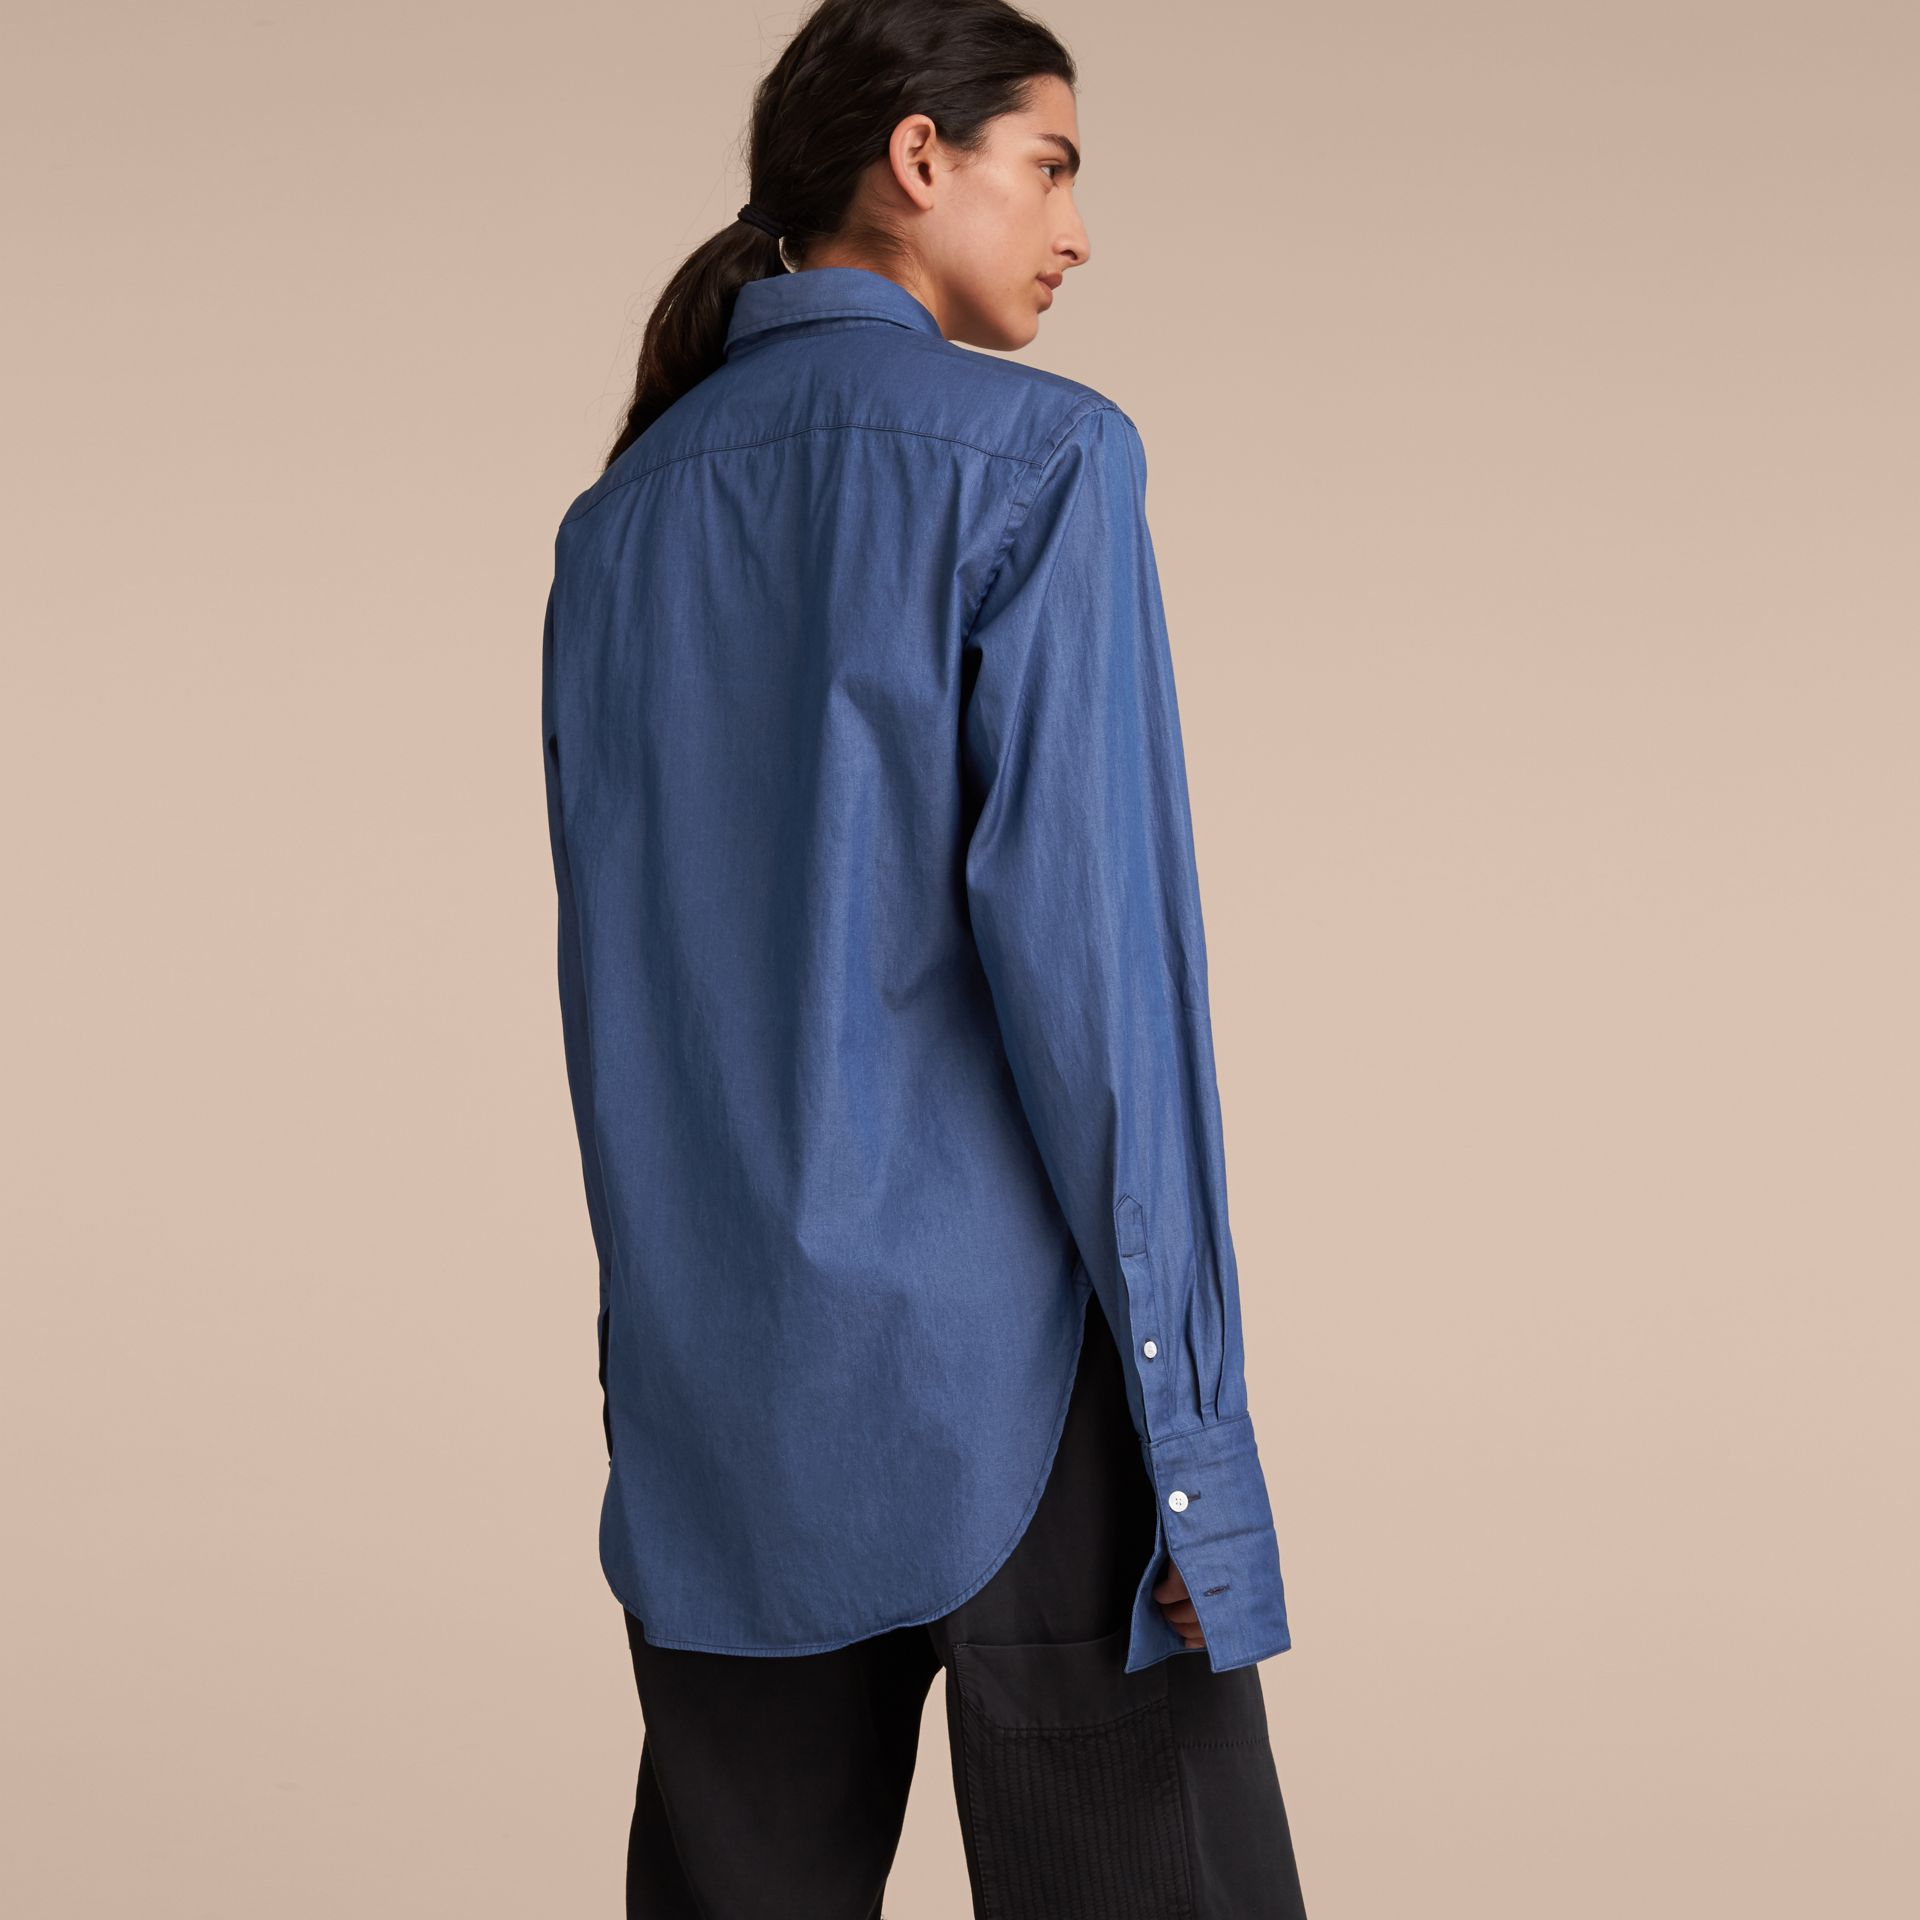 Unisex Double-cuff Pintuck Bib Cotton Shirt in Denim Blue - Women | Burberry - gallery image 7